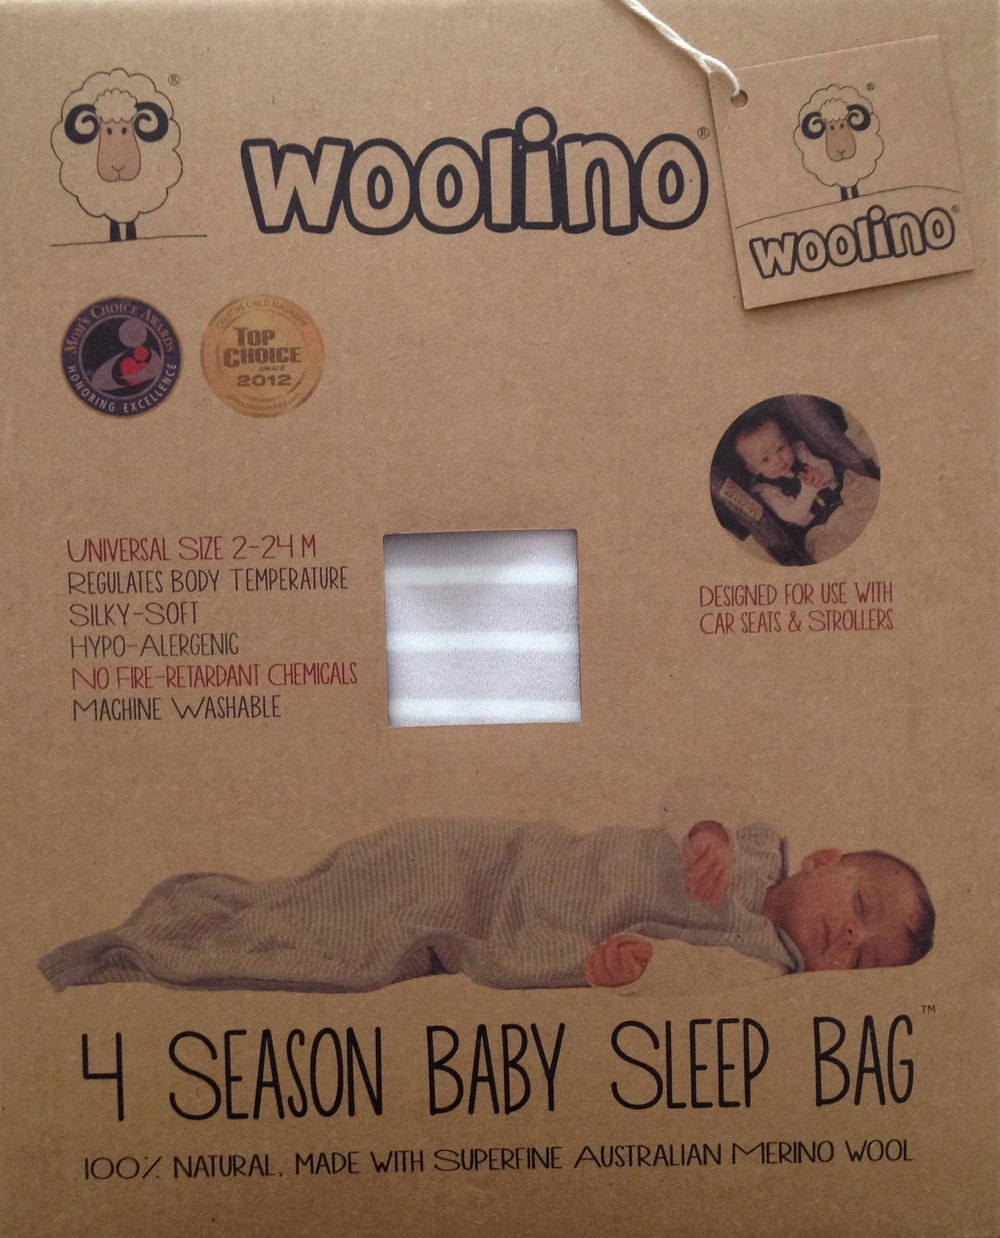 Woolino provided a sleep sack for me to review.